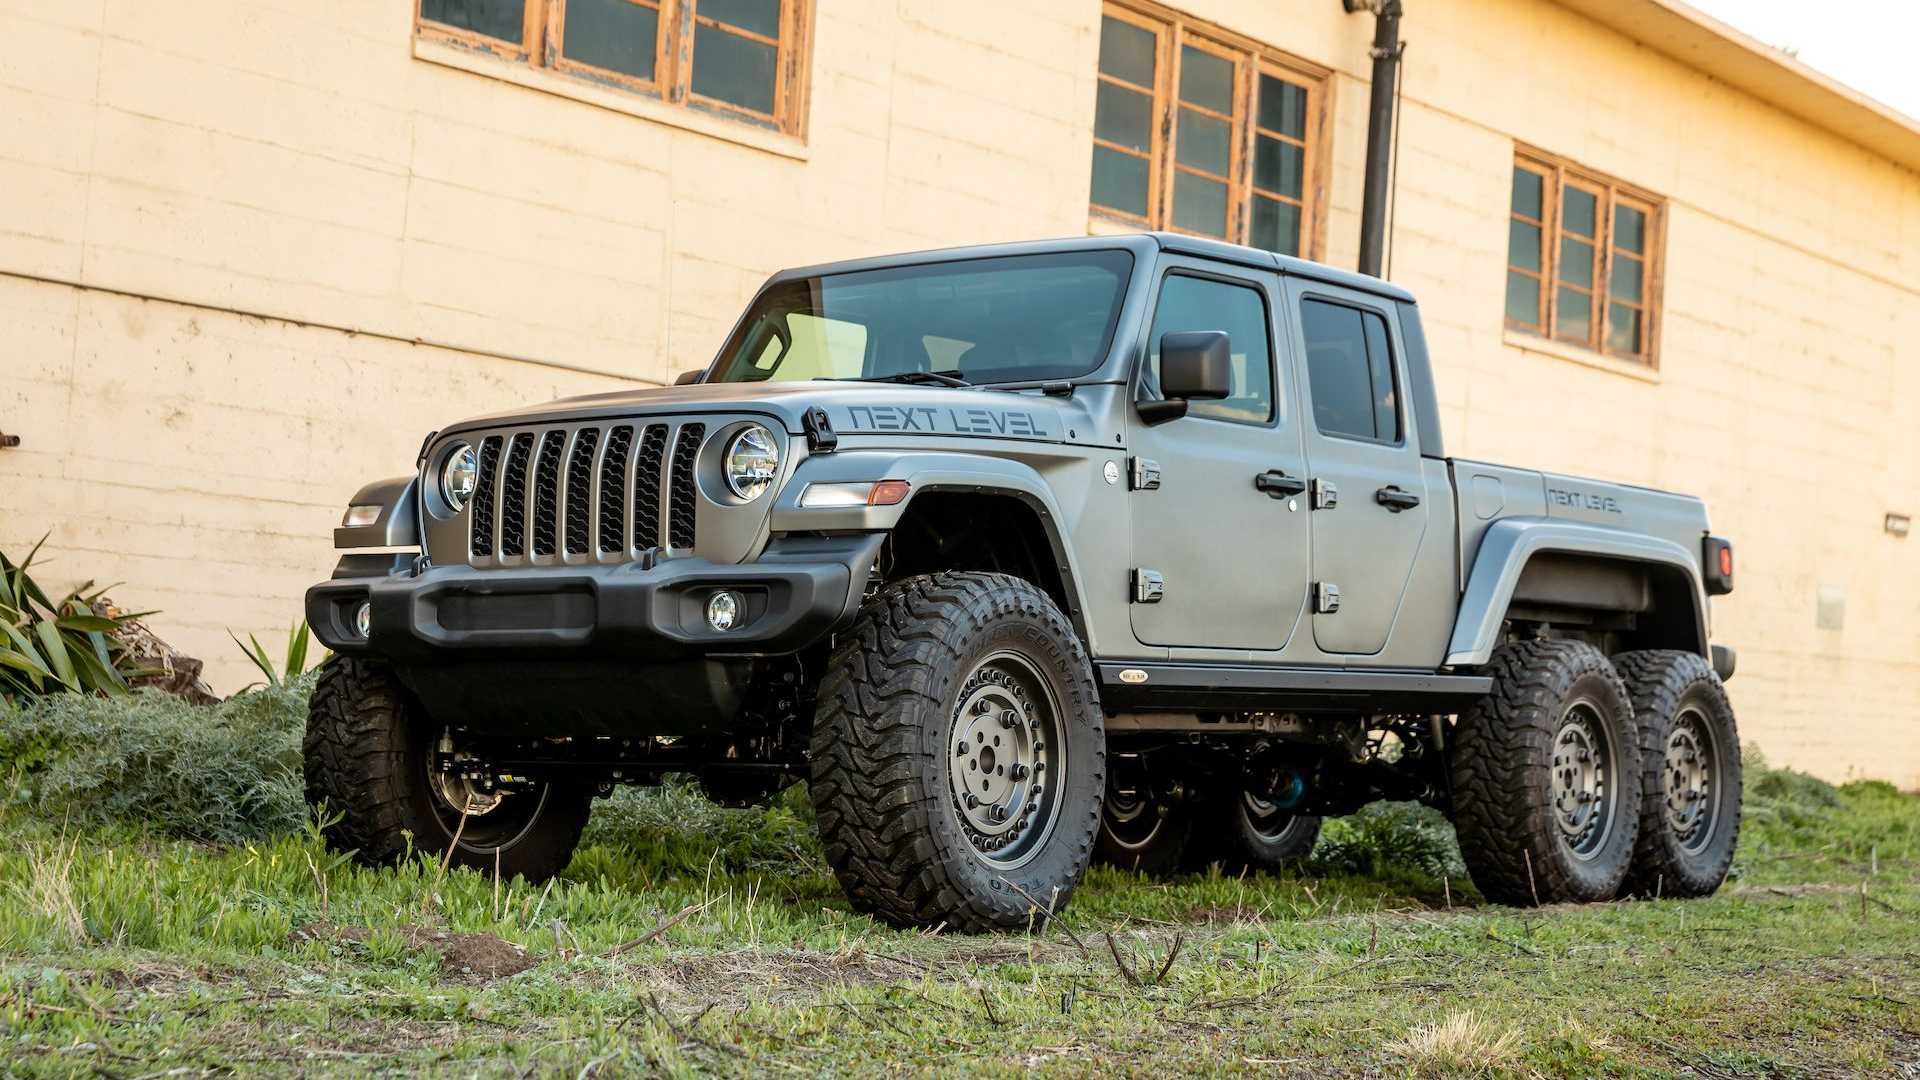 Jeep gladiator 6x6 equipped with Chevrolet Corvette was introduced